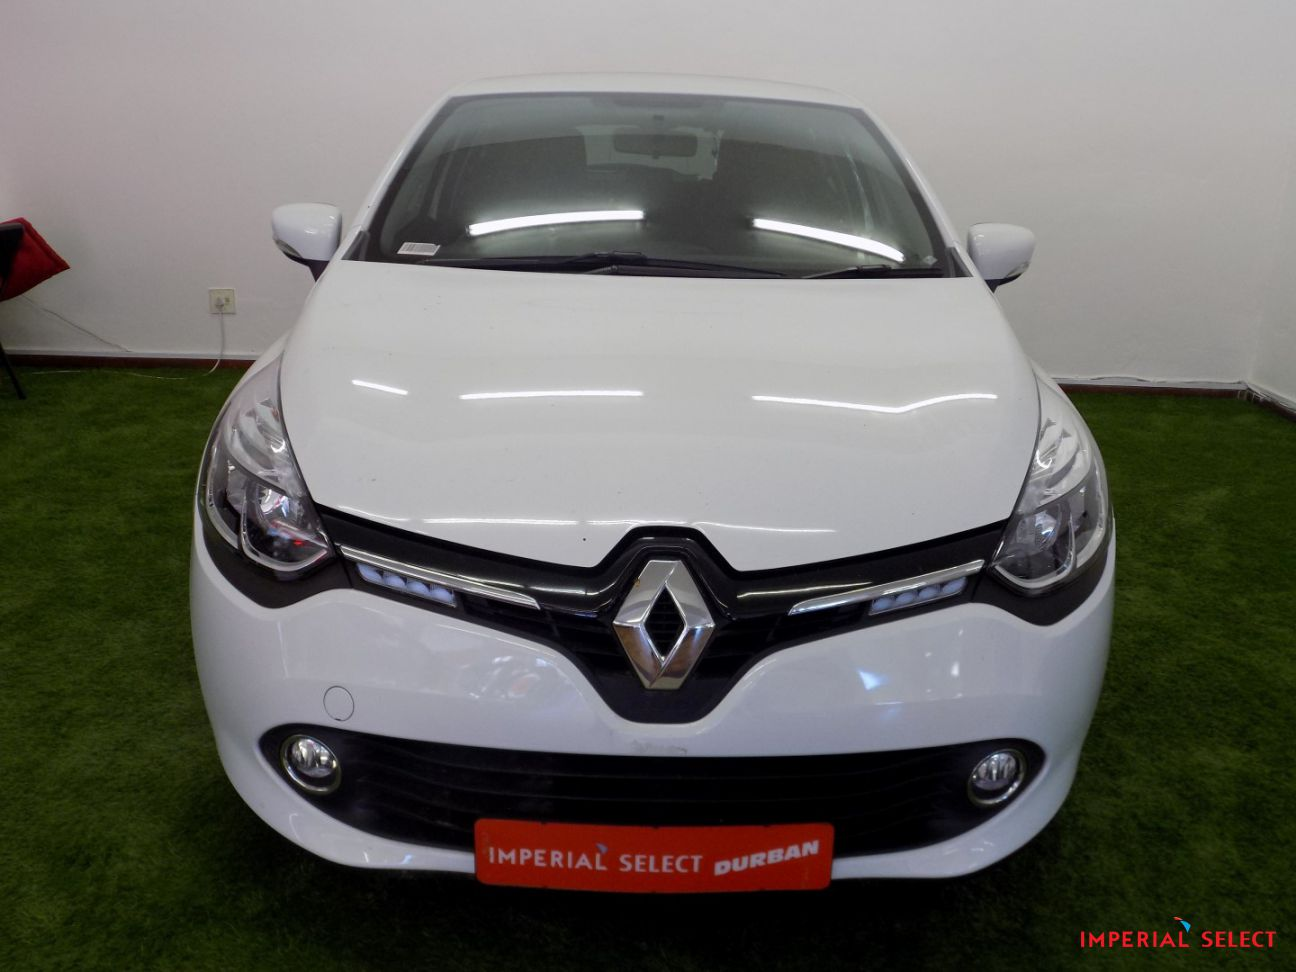 2017 renault clio 4 0 9 turbo expression at imperial select durban. Black Bedroom Furniture Sets. Home Design Ideas